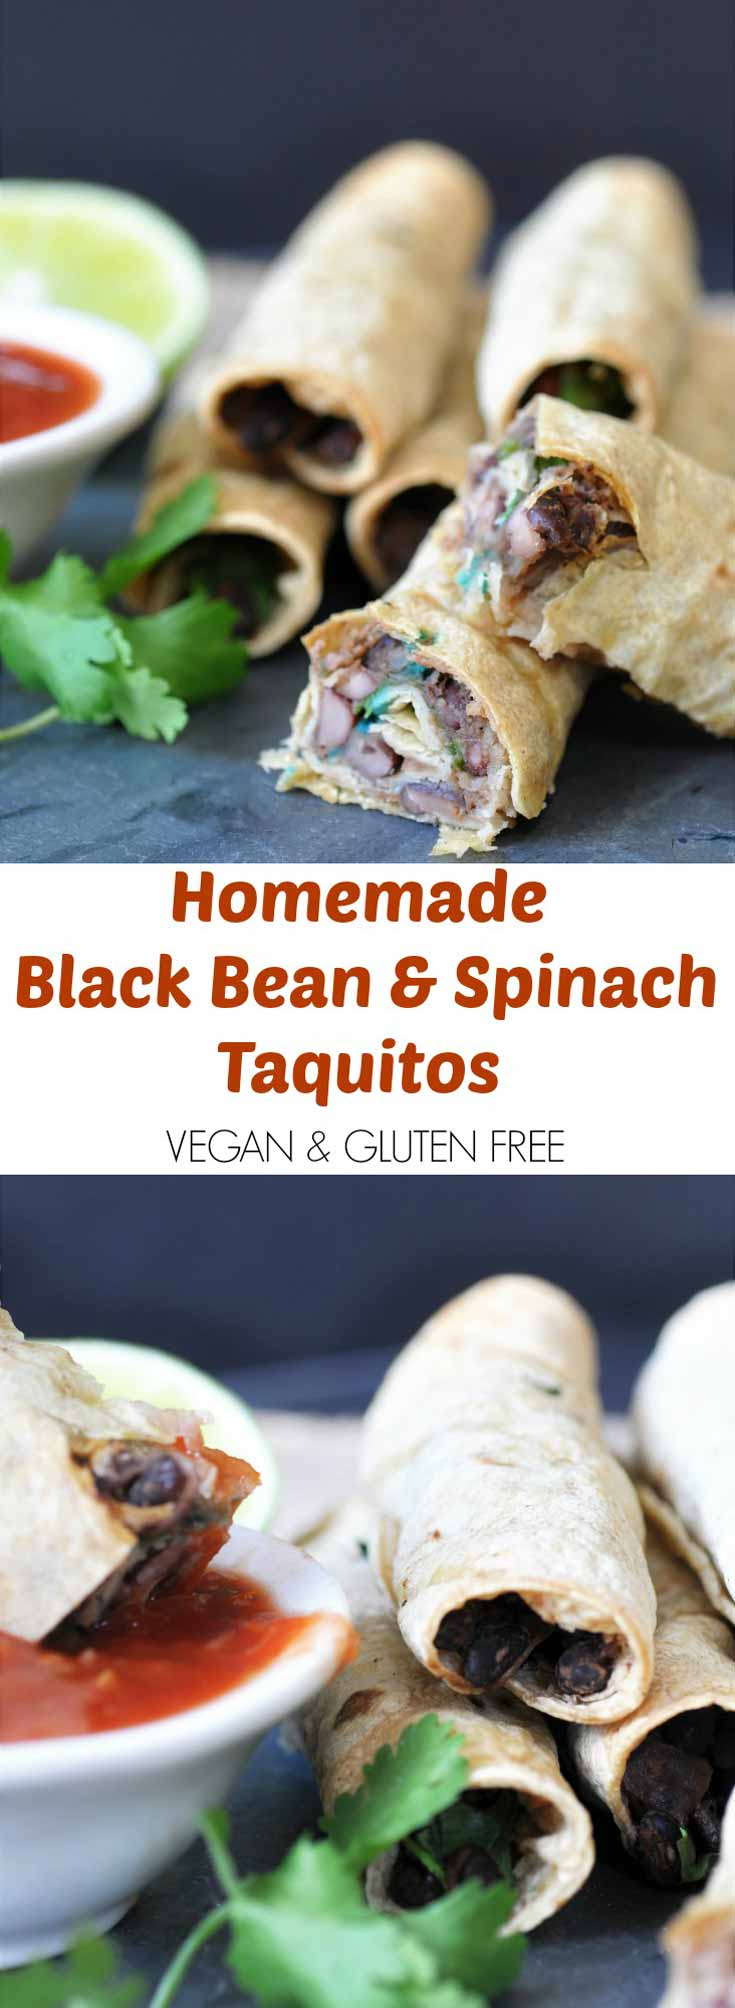 Homemade Black Bean & Spinach Taquitos! This taquito recipe is so crispy on the outside and savory and chewy on the inside. The perfect appetizer or make it part of a meal. www.veganosity.com